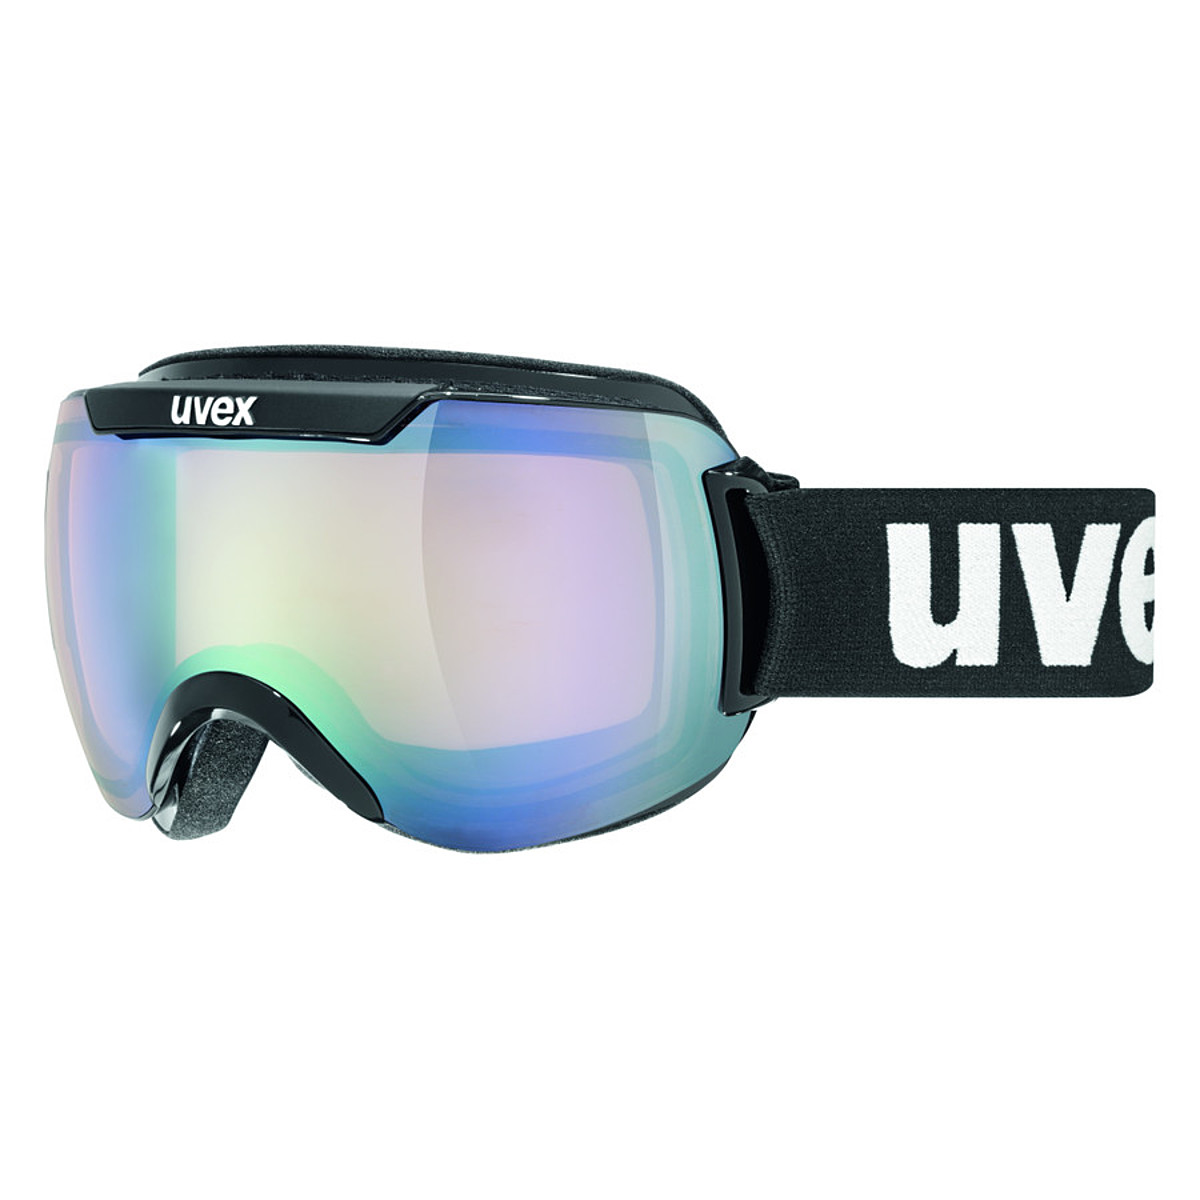 photo: Uvex Downhill 2000 Variomatic Goggle goggle